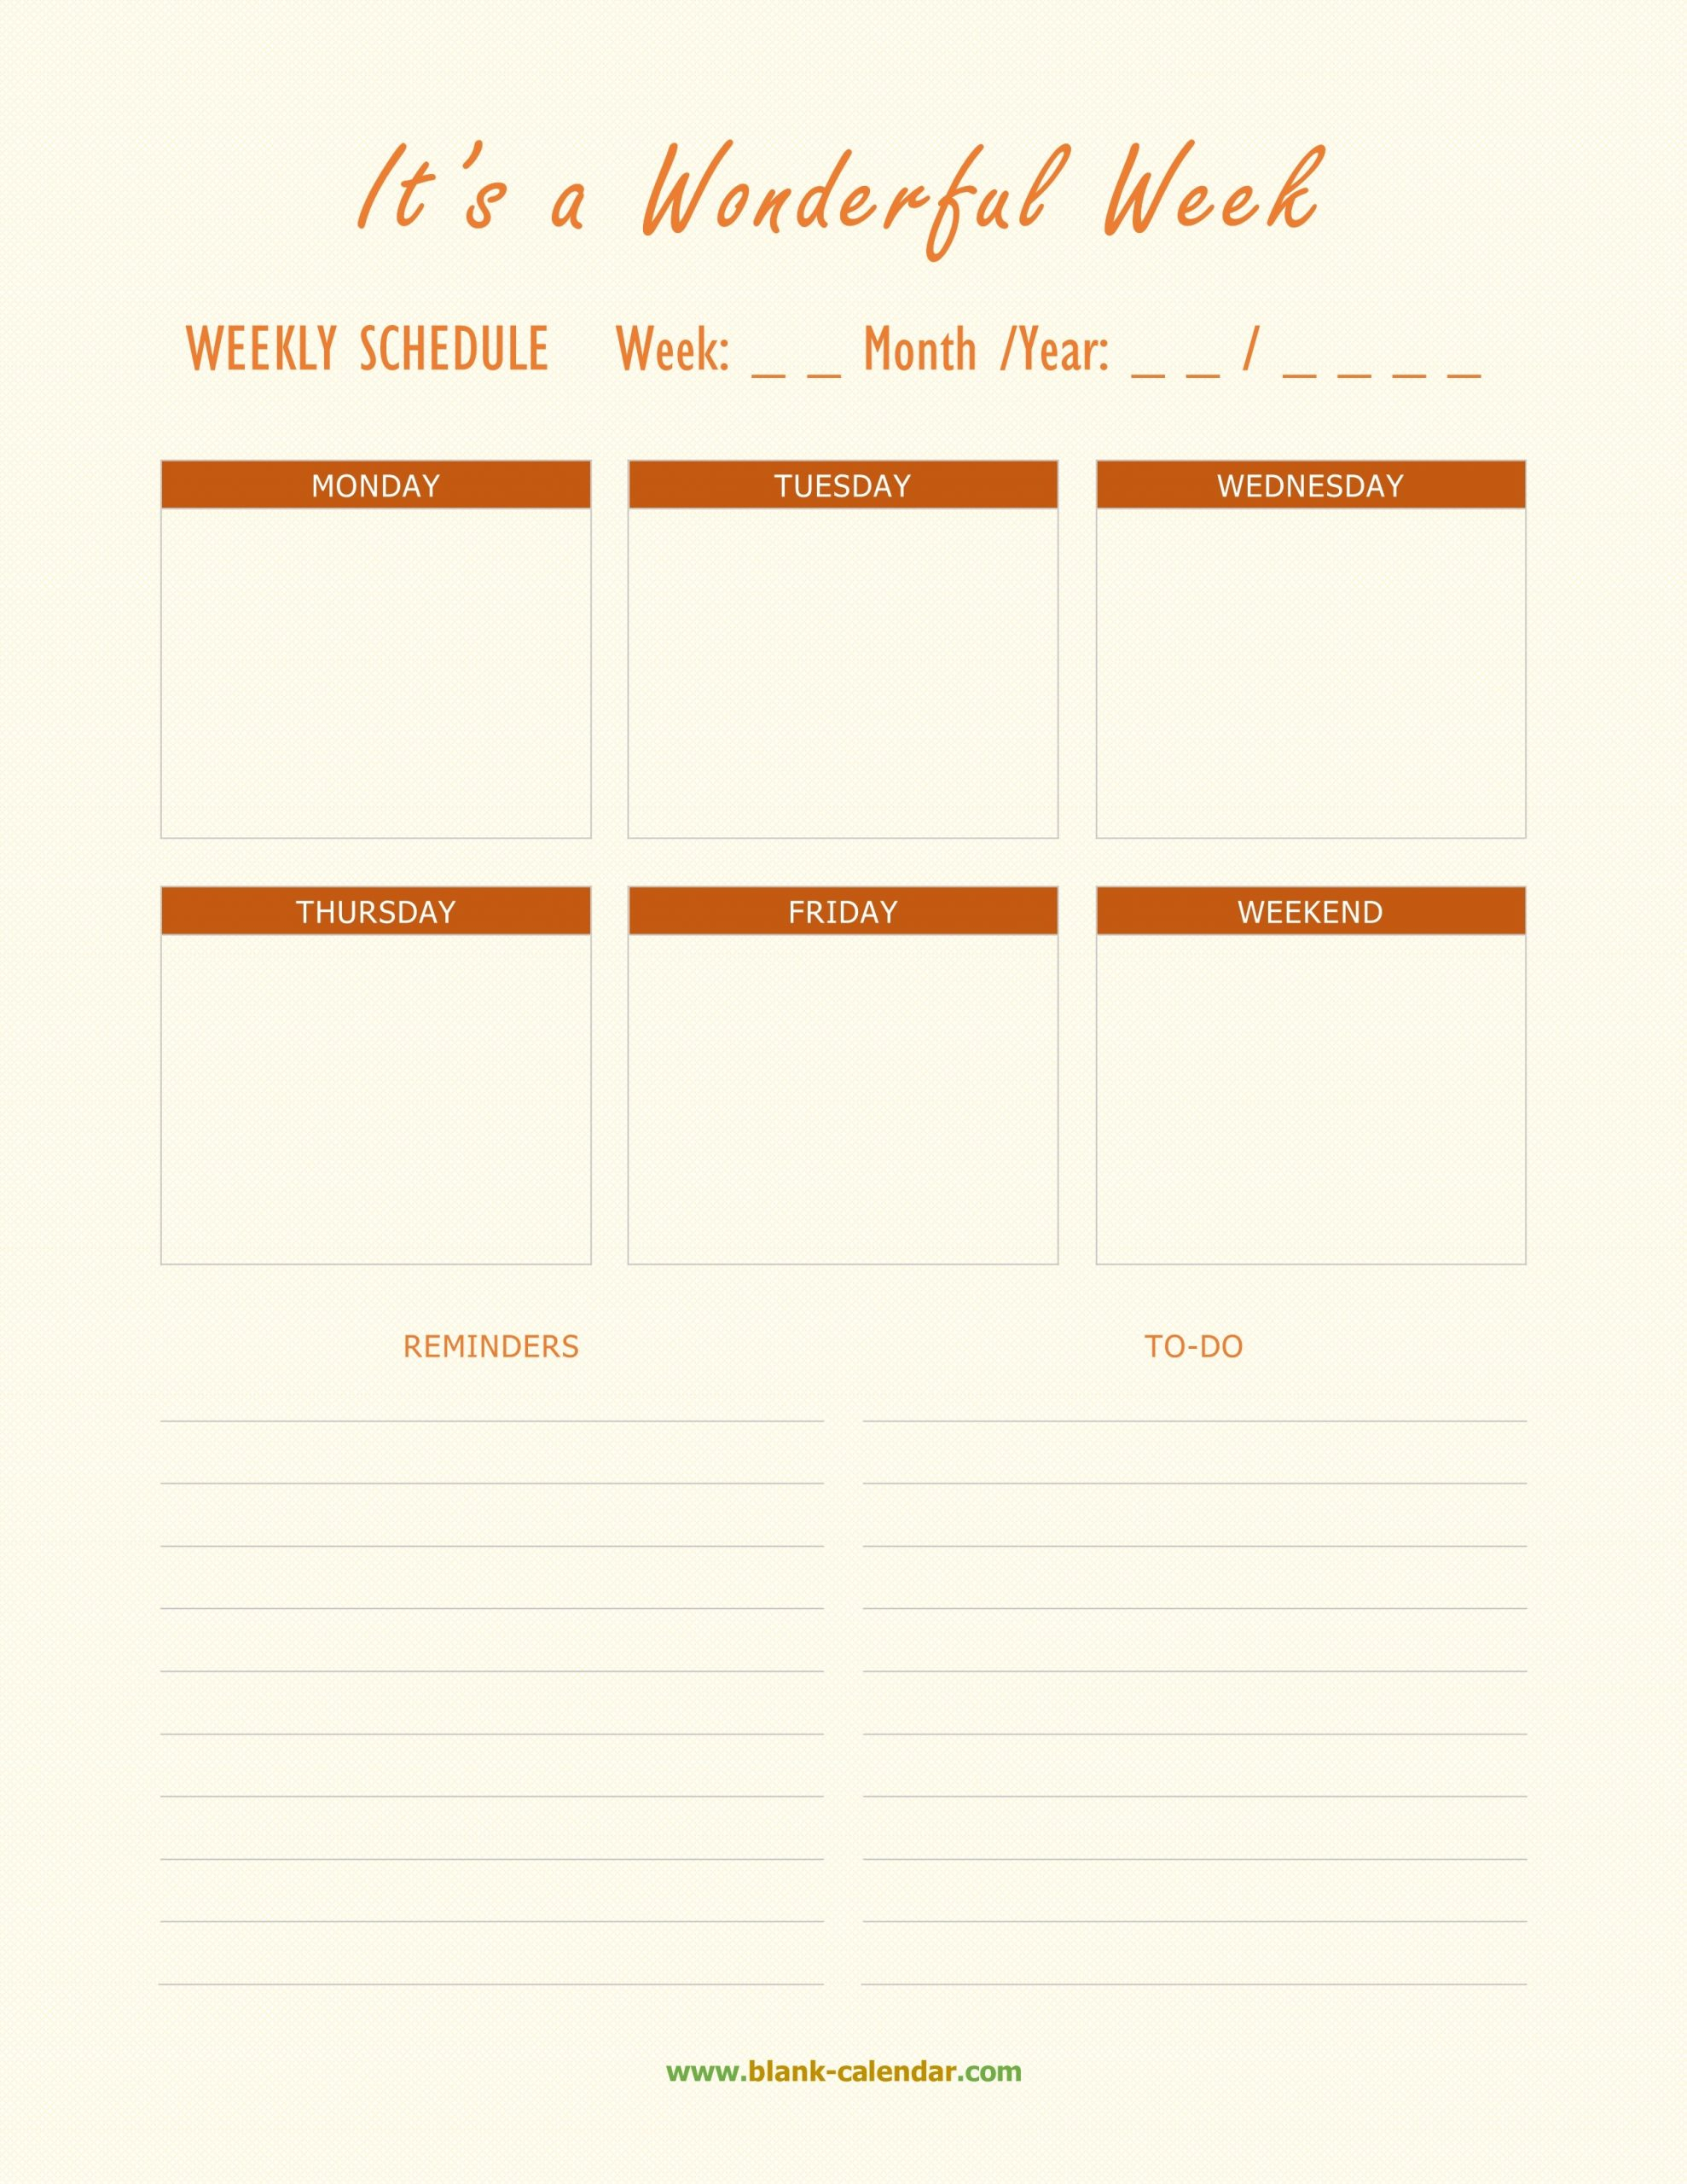 Weekly Schedule Template Doc How To Have A Fantastic with regard to How To Convert Xcel Doc To Calendar